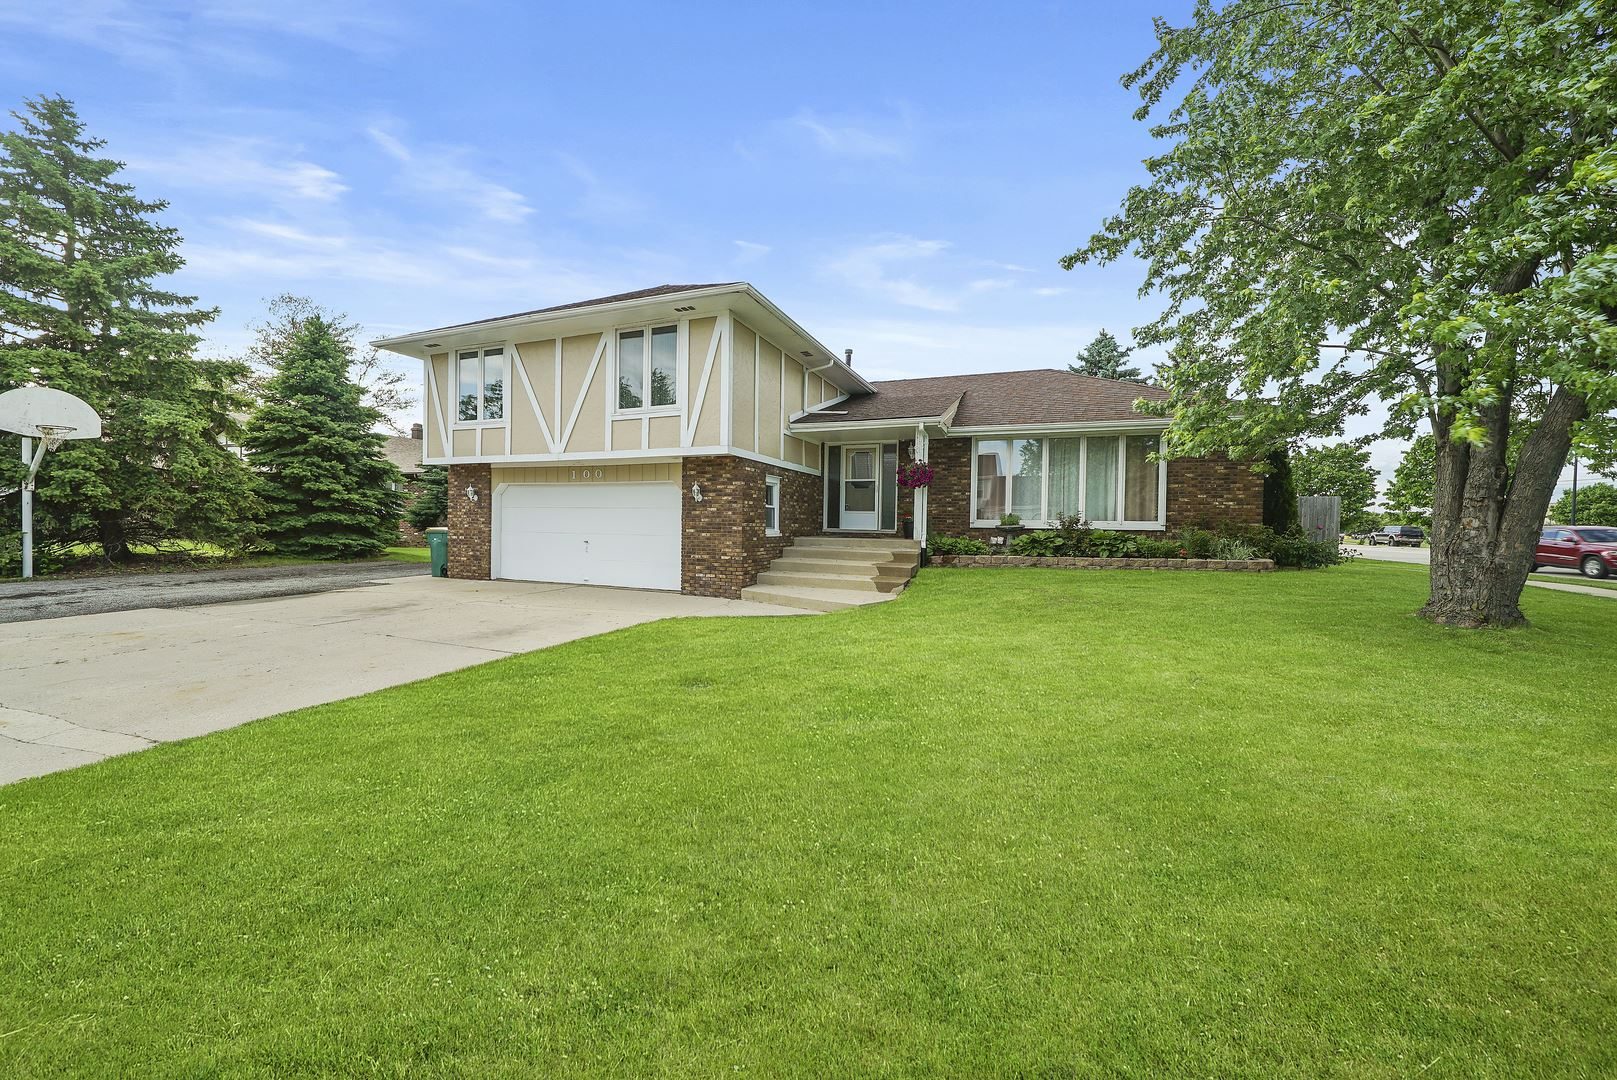 Photo of 100 Meadow Drive, Shorewood, IL 60404 (MLS # 10784746)